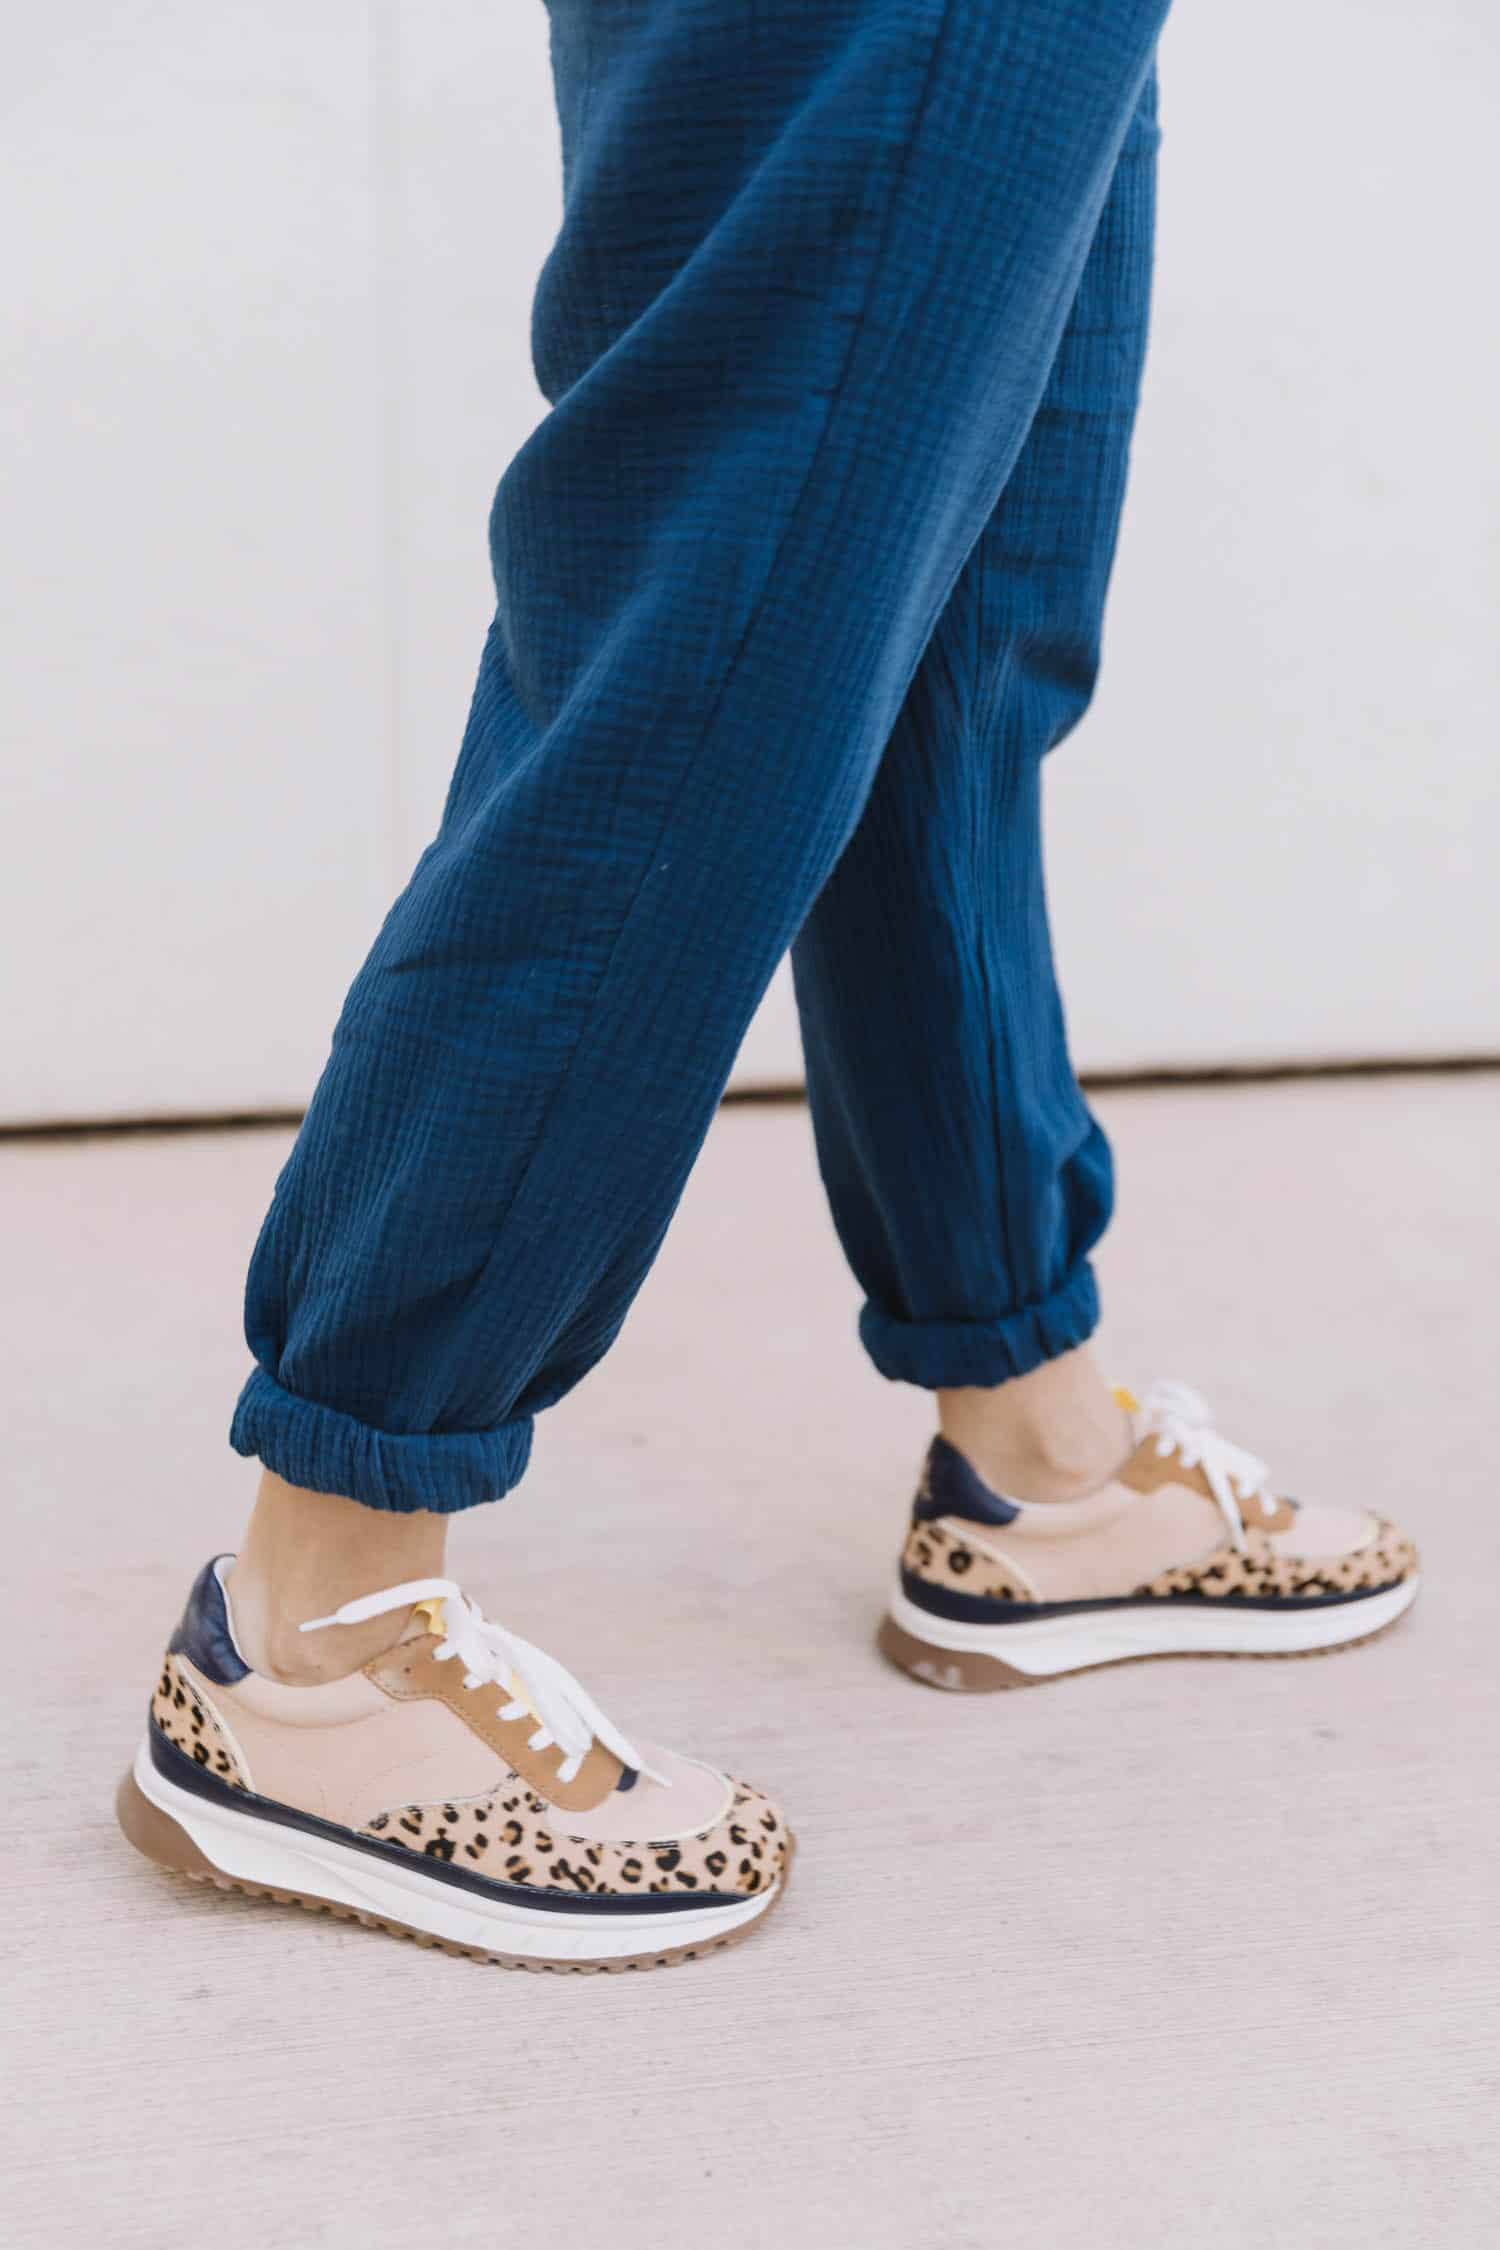 madewell trainer shoes